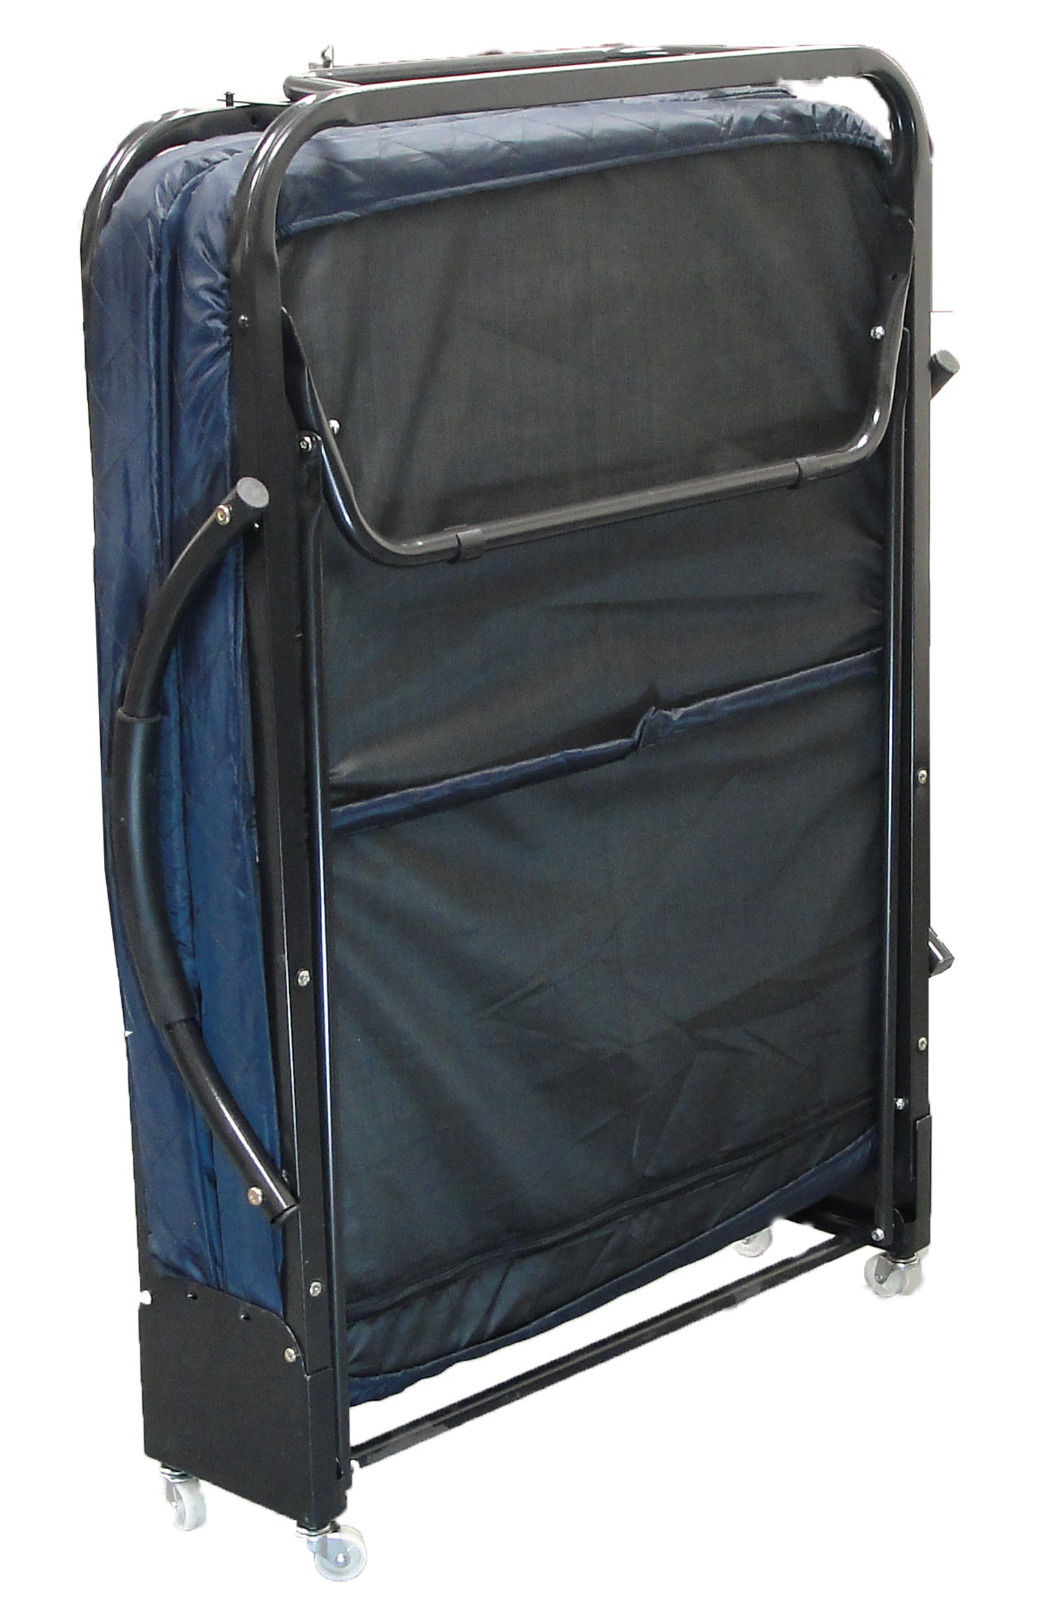 Twin size Rollaway Folding Bed, Dark Blue w Foam Mattress and Handle Bars